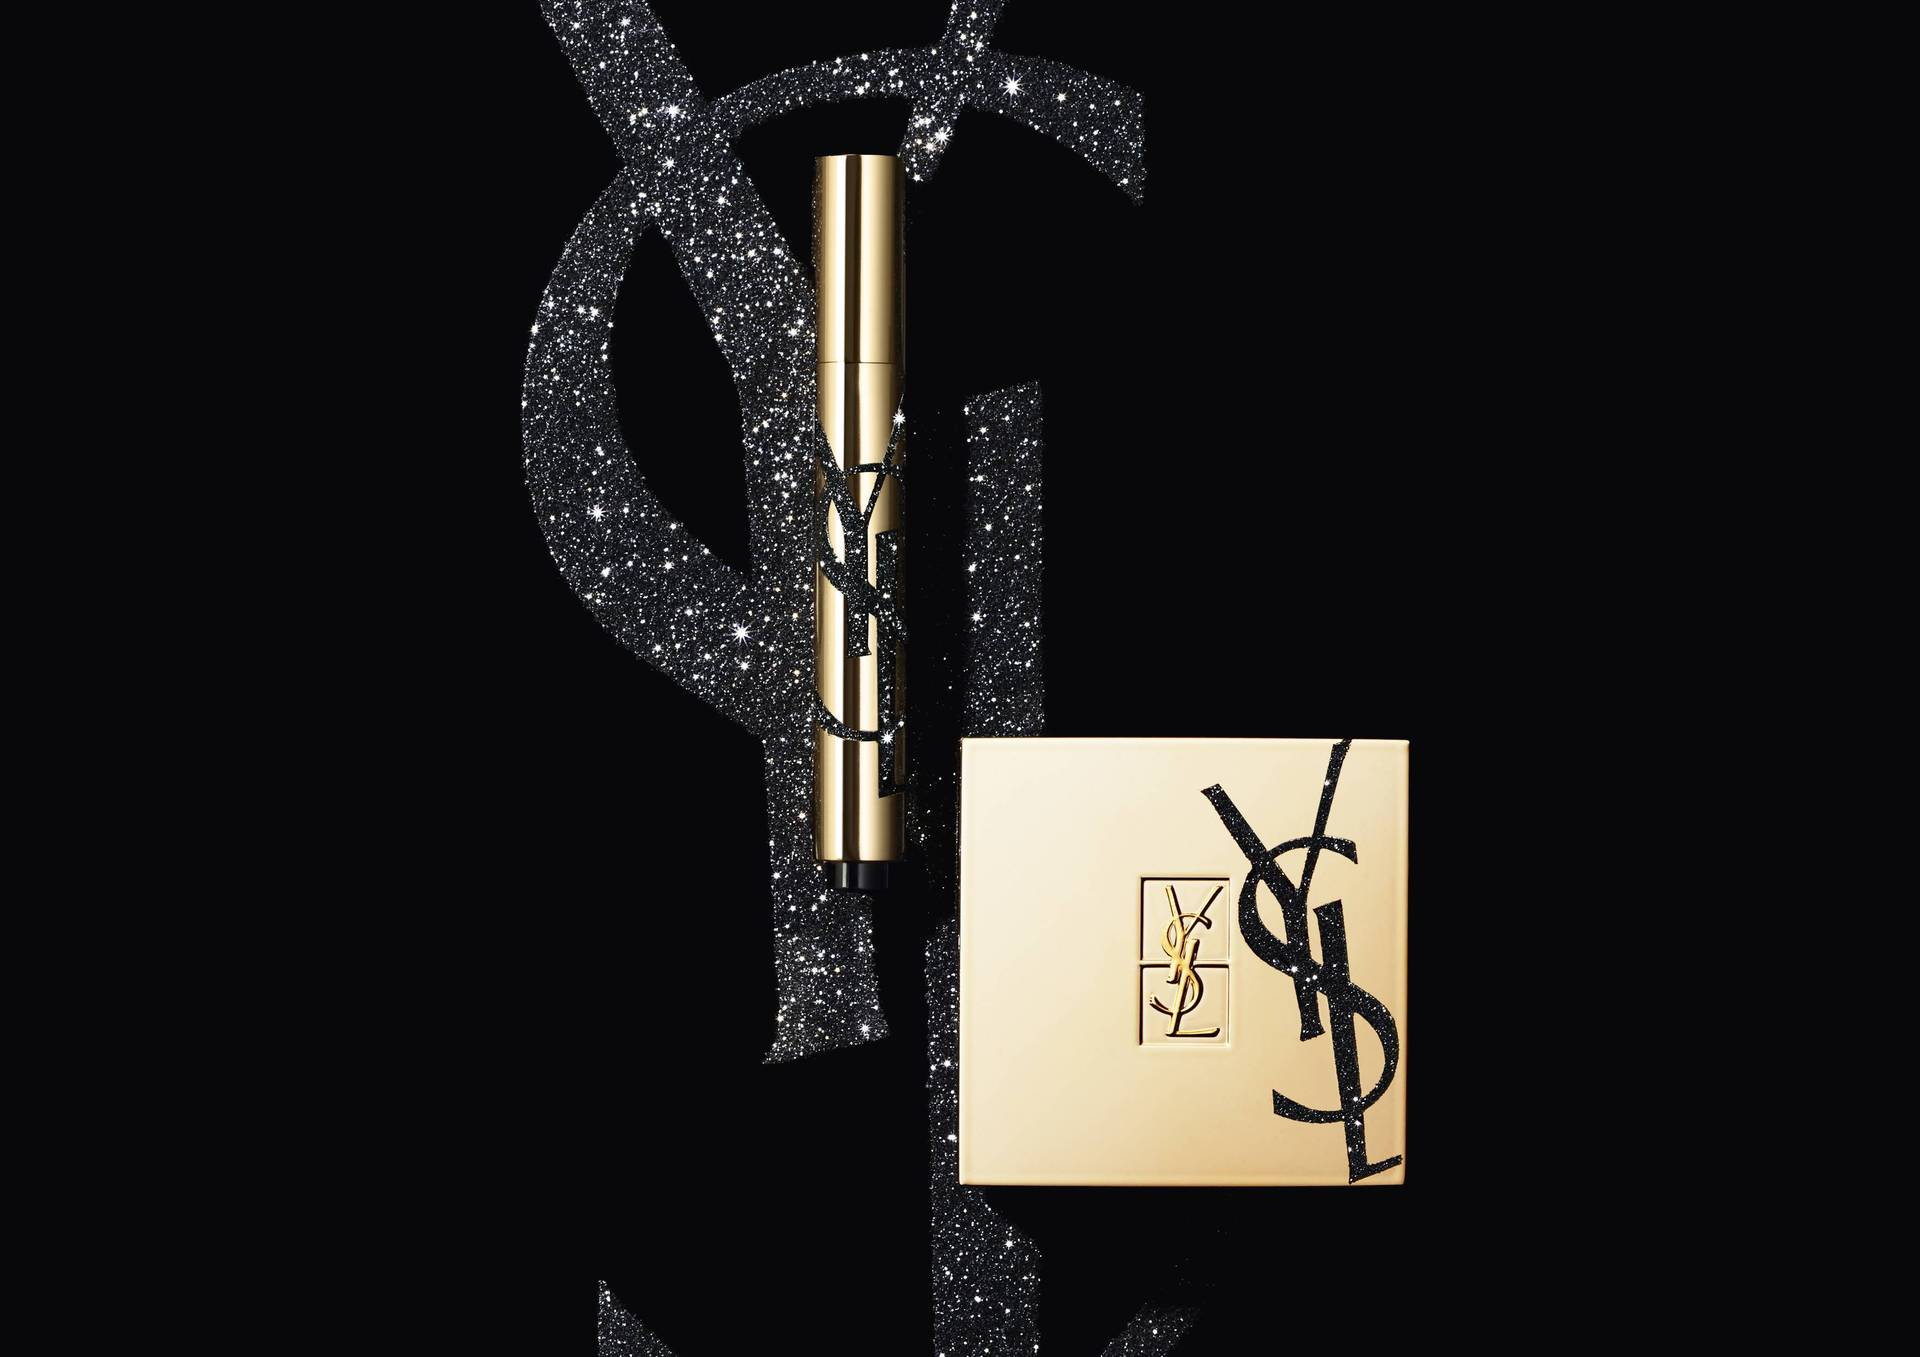 YSL's Powerful New Monogram Edition Collection Has Just Launched